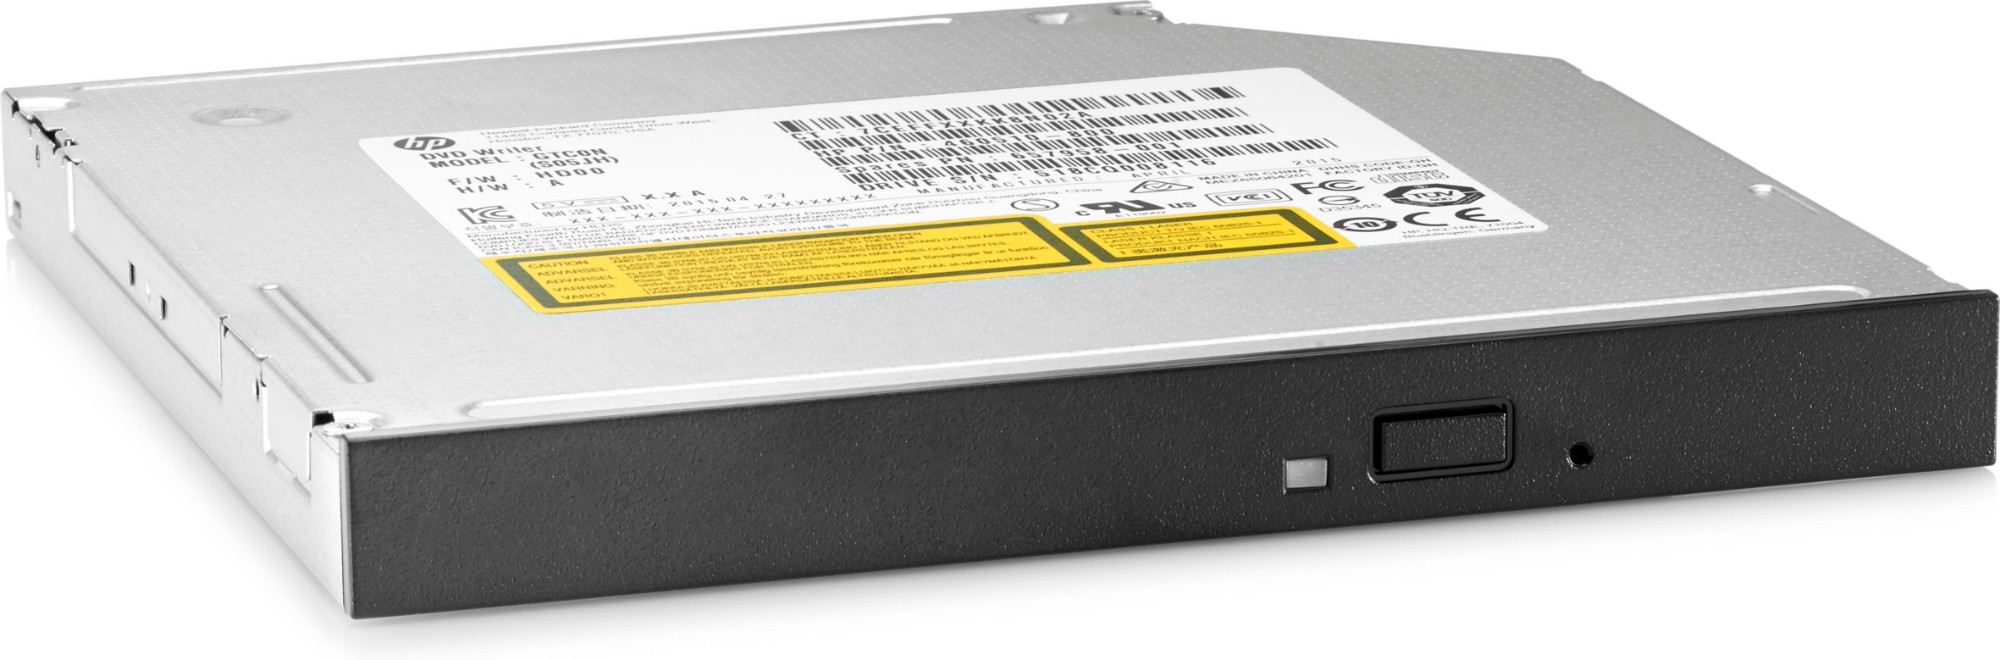 HP 9.5mm Desktop G2 Slim DVD-Writer Drive (N1M42AA)